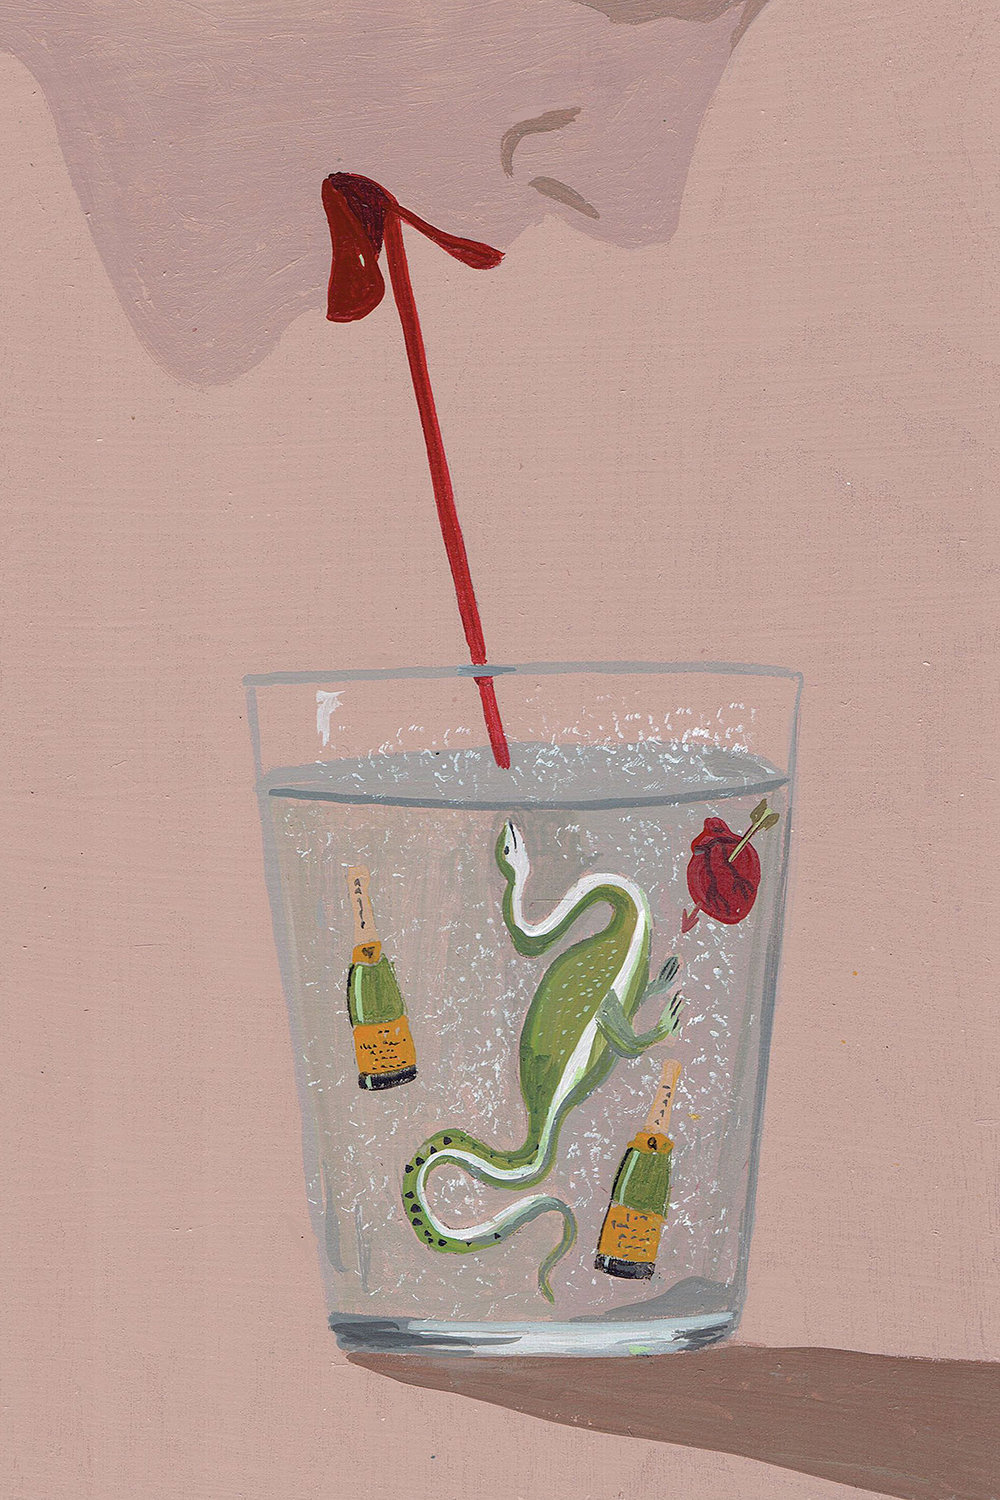 Image of a female with red lips sipping a drink through a straw that has a dinosaur, a heart with an arrow through it, and two champagne bottles floating in it